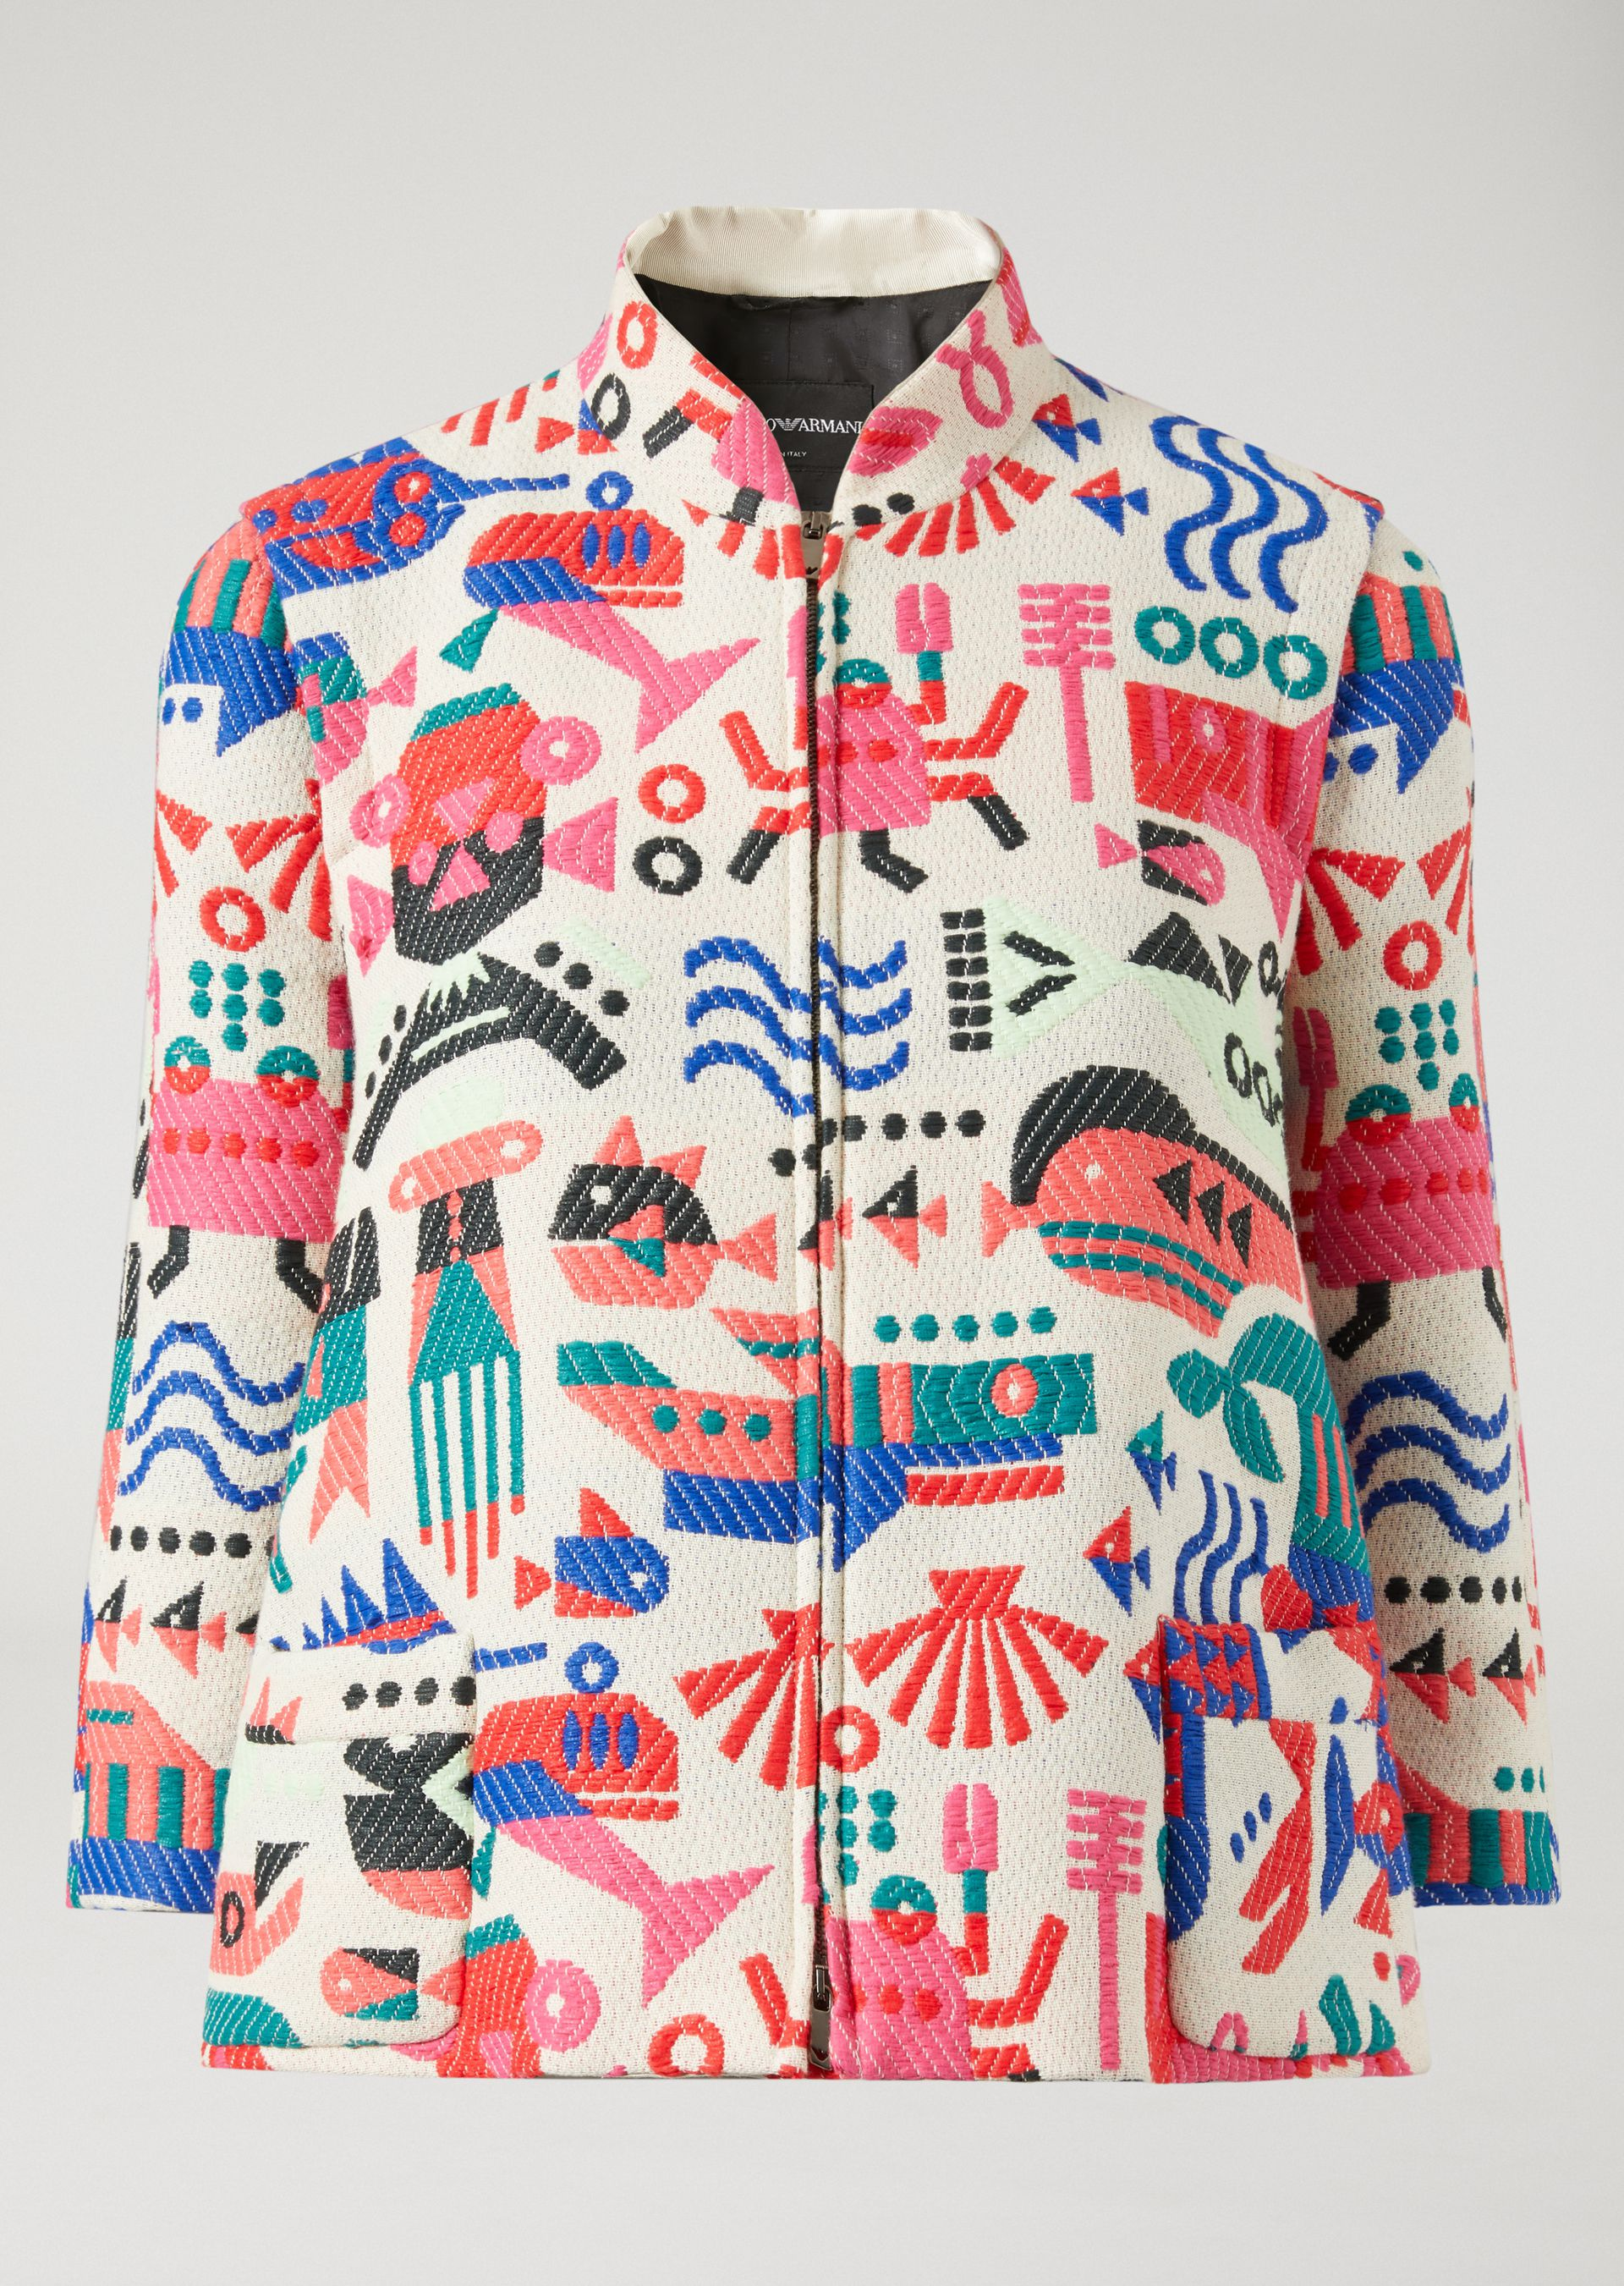 EMPORIO ARMANI JACQUARD BLOUSON WITH CYBER FISH Fashion Jacket D r